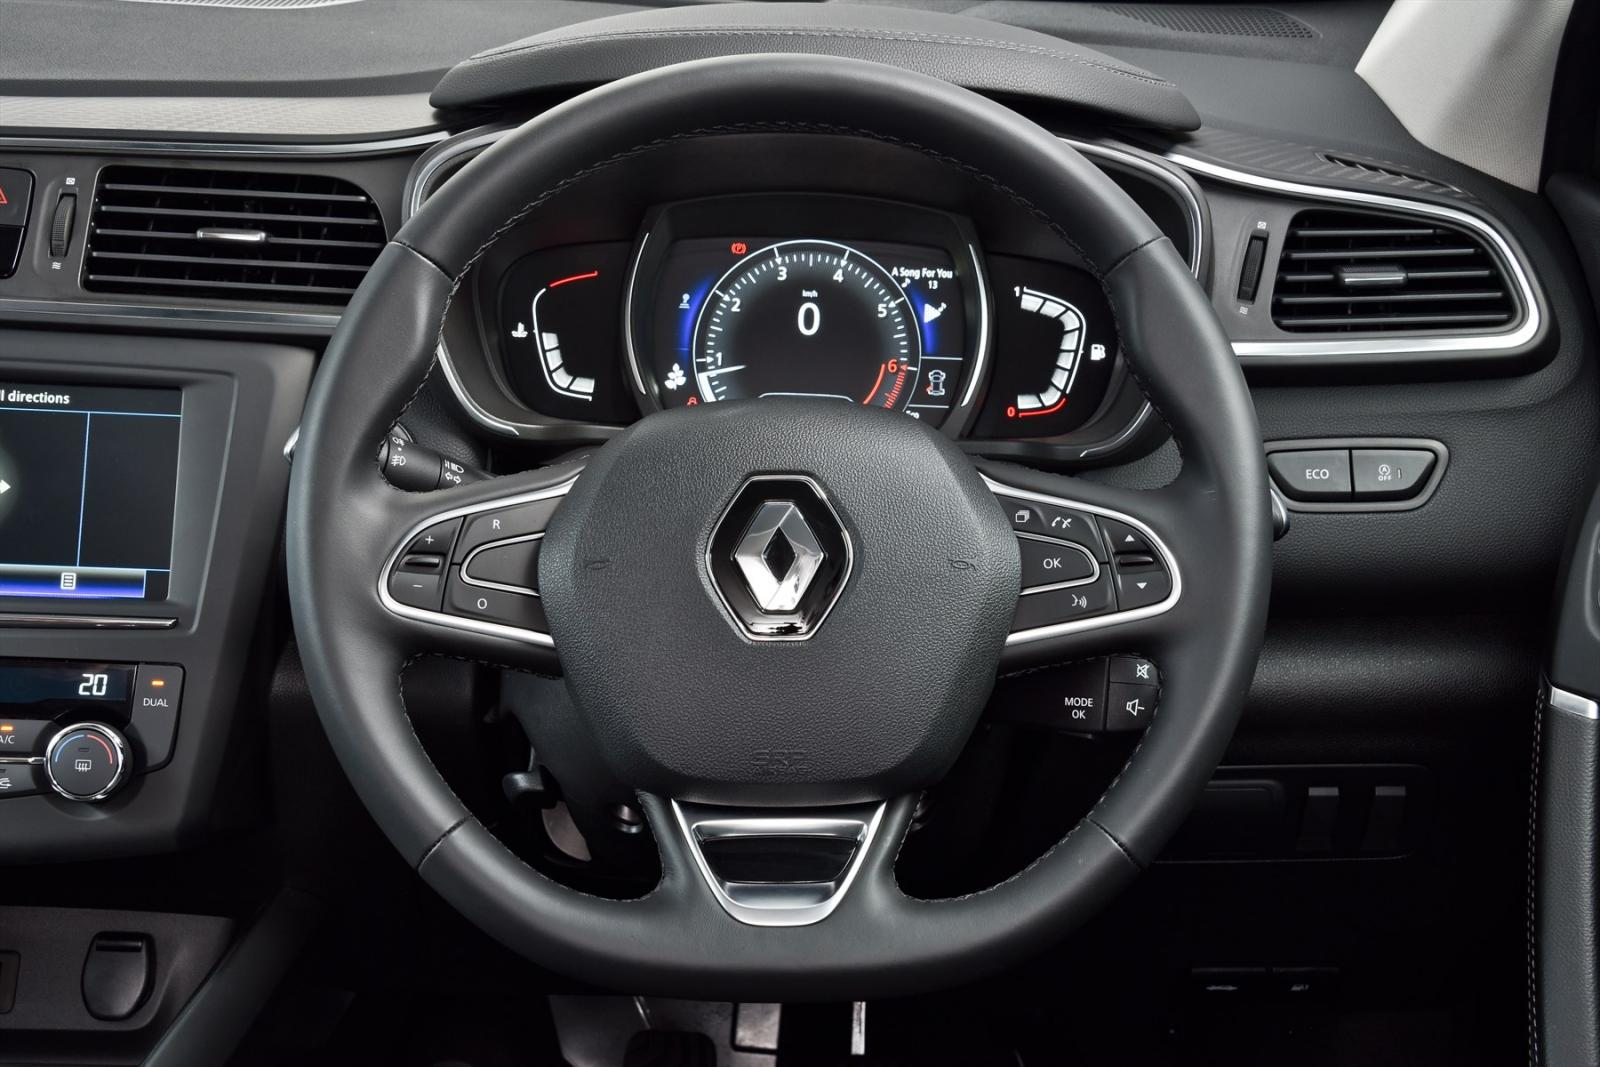 renault kadjar 96 kw 1 2 dynamique automatic 2016 review. Black Bedroom Furniture Sets. Home Design Ideas